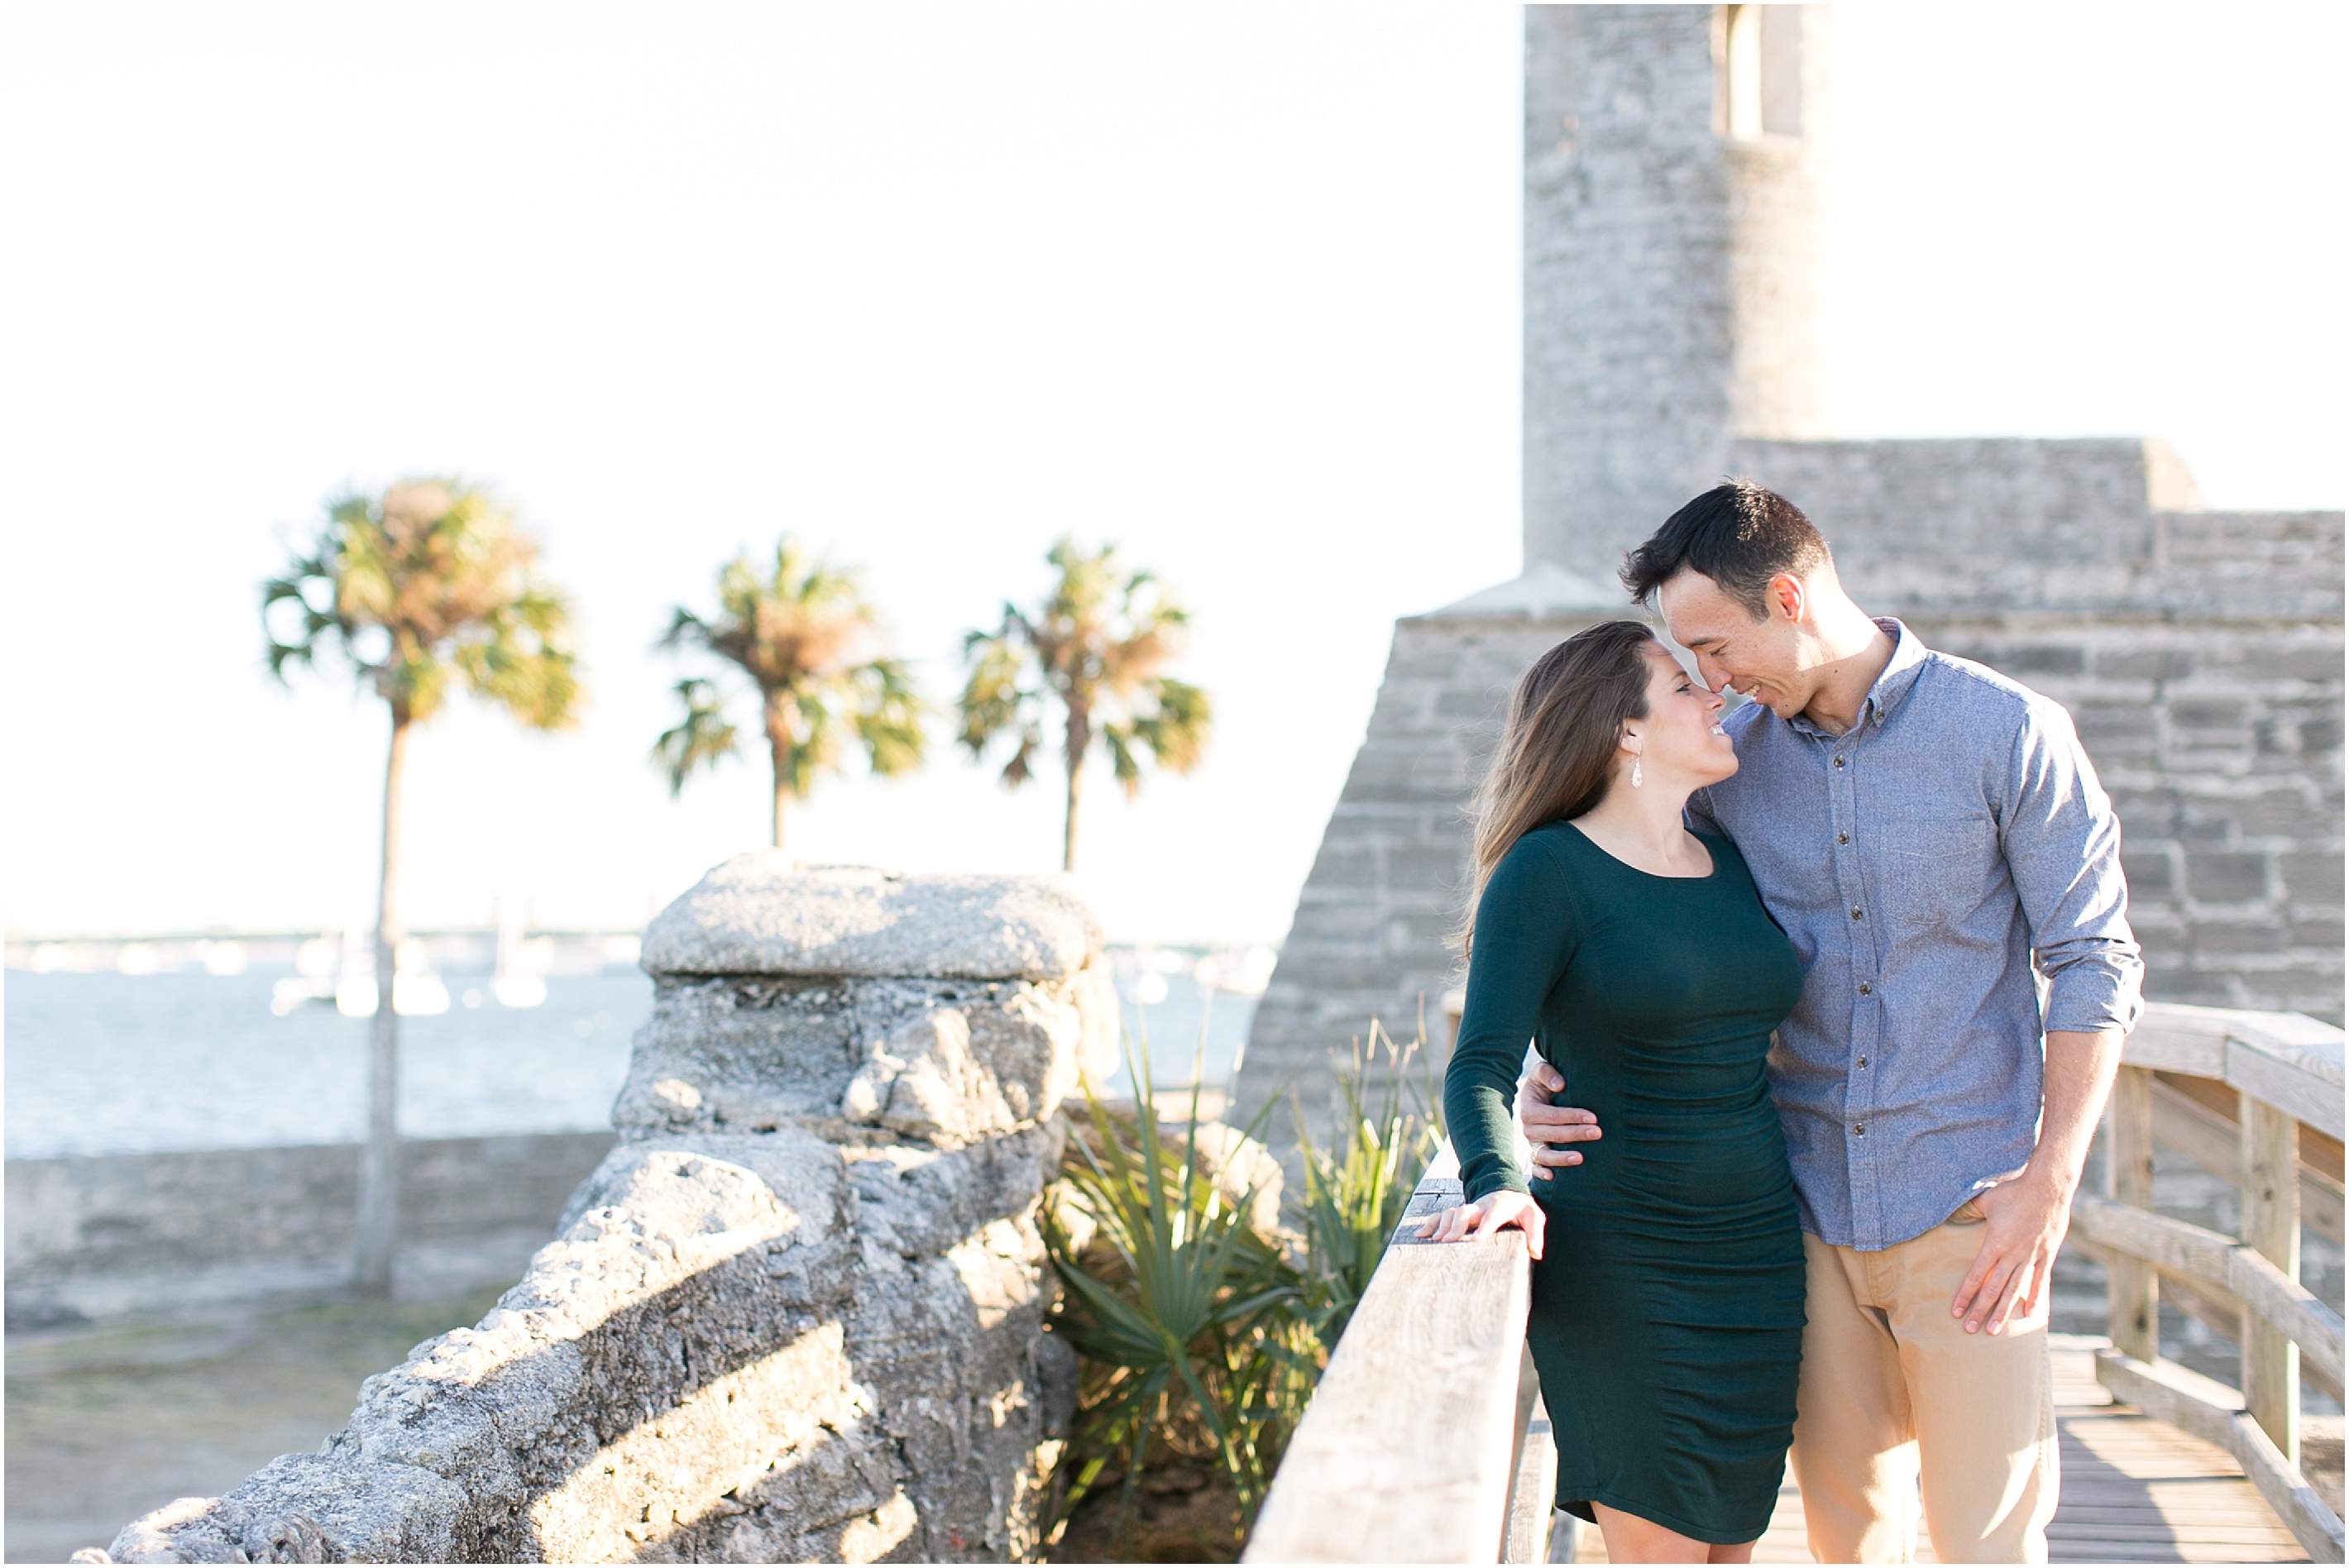 va_jessica_ryan_photography_st_augustine_florida_destination_engagement_photography_0131